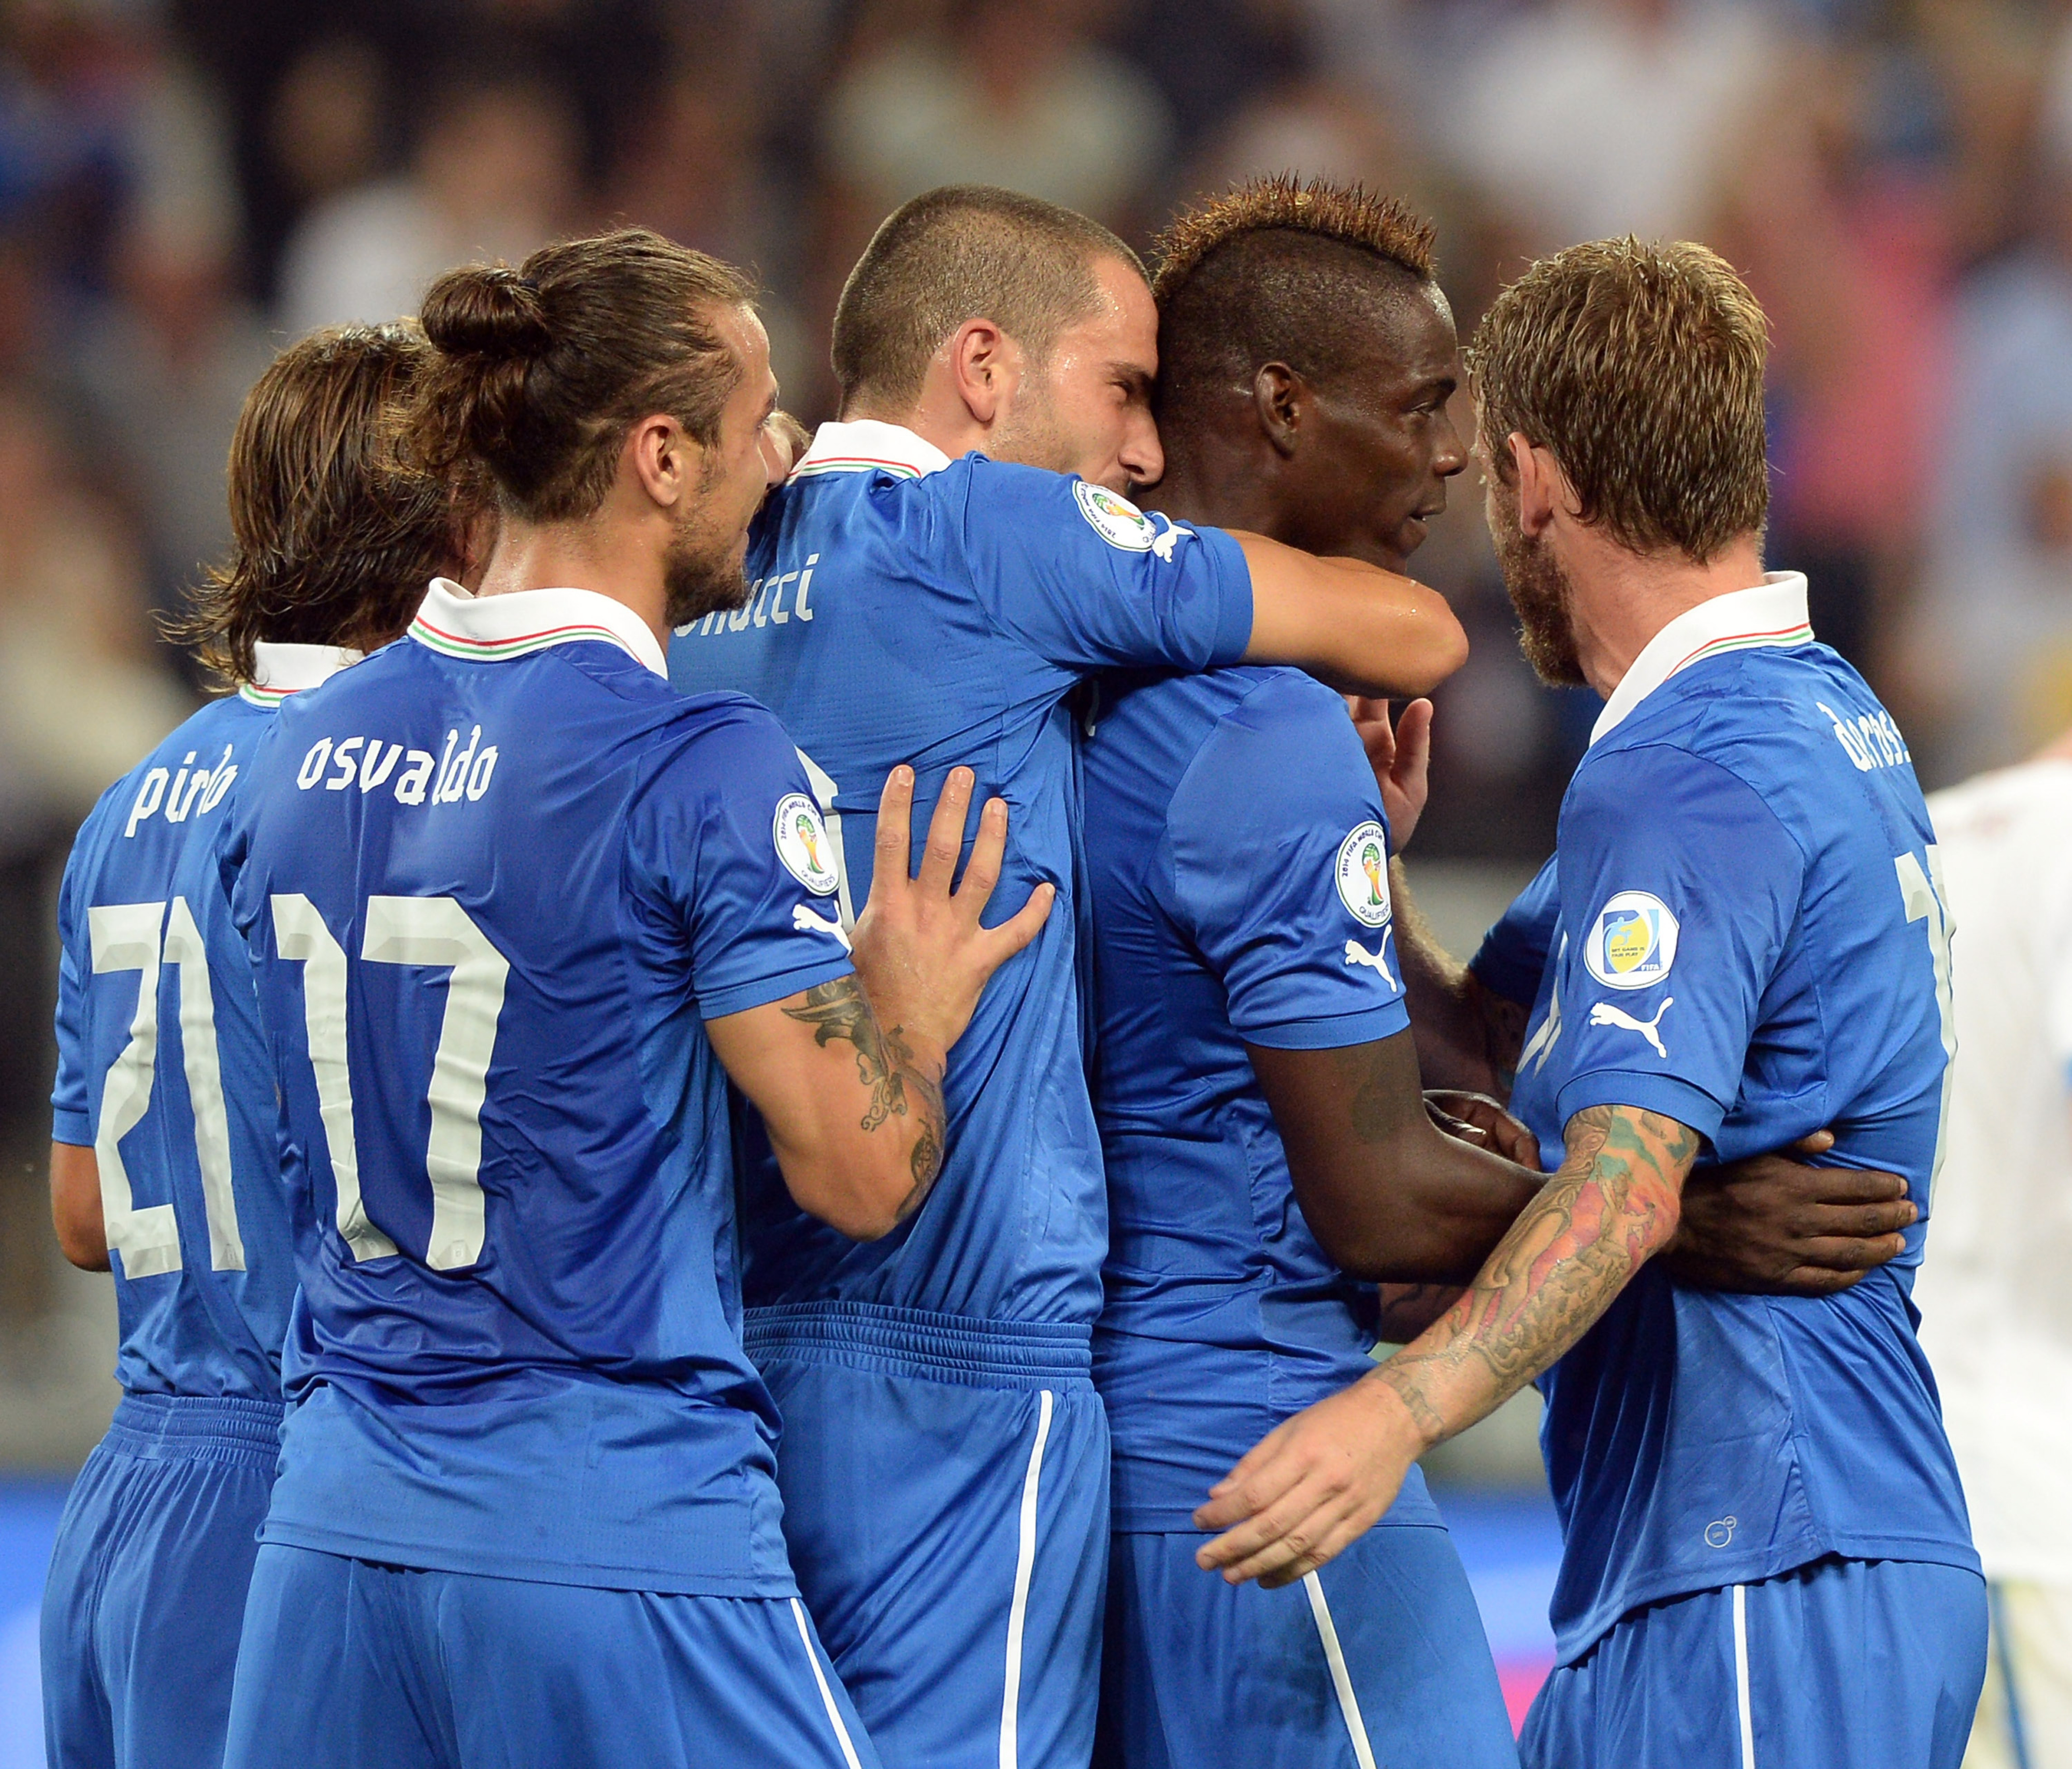 UEFA World Cup 2014 qualifying: Italy, Netherlands go through